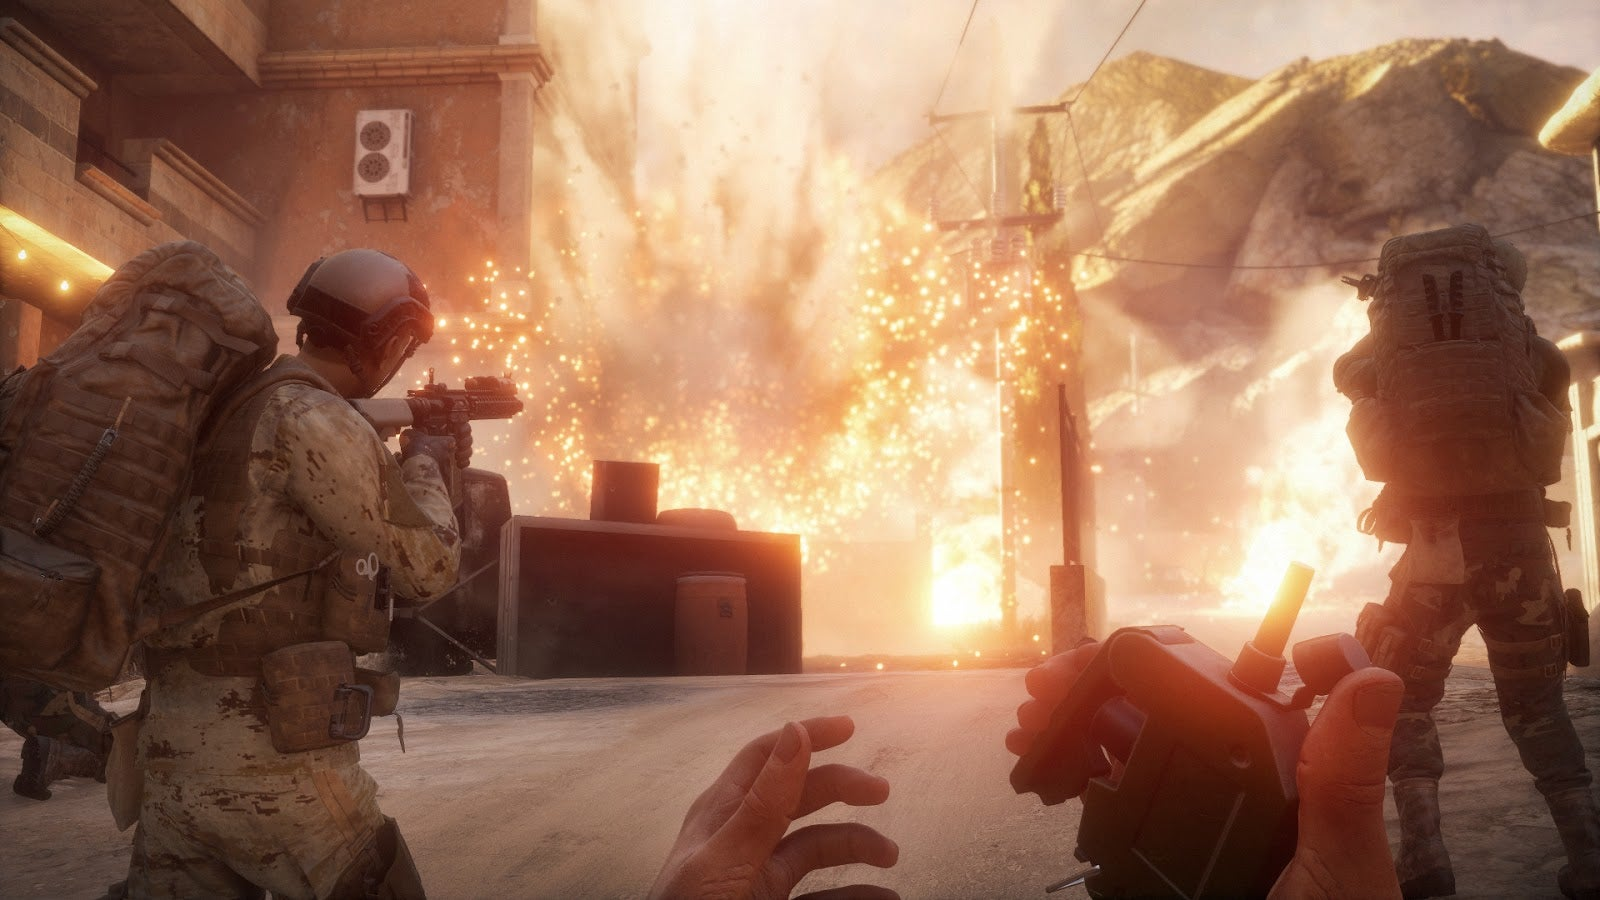 Insurgency: Sandstorm Is Lethal, Gripping And Somewhat Uncomfortable